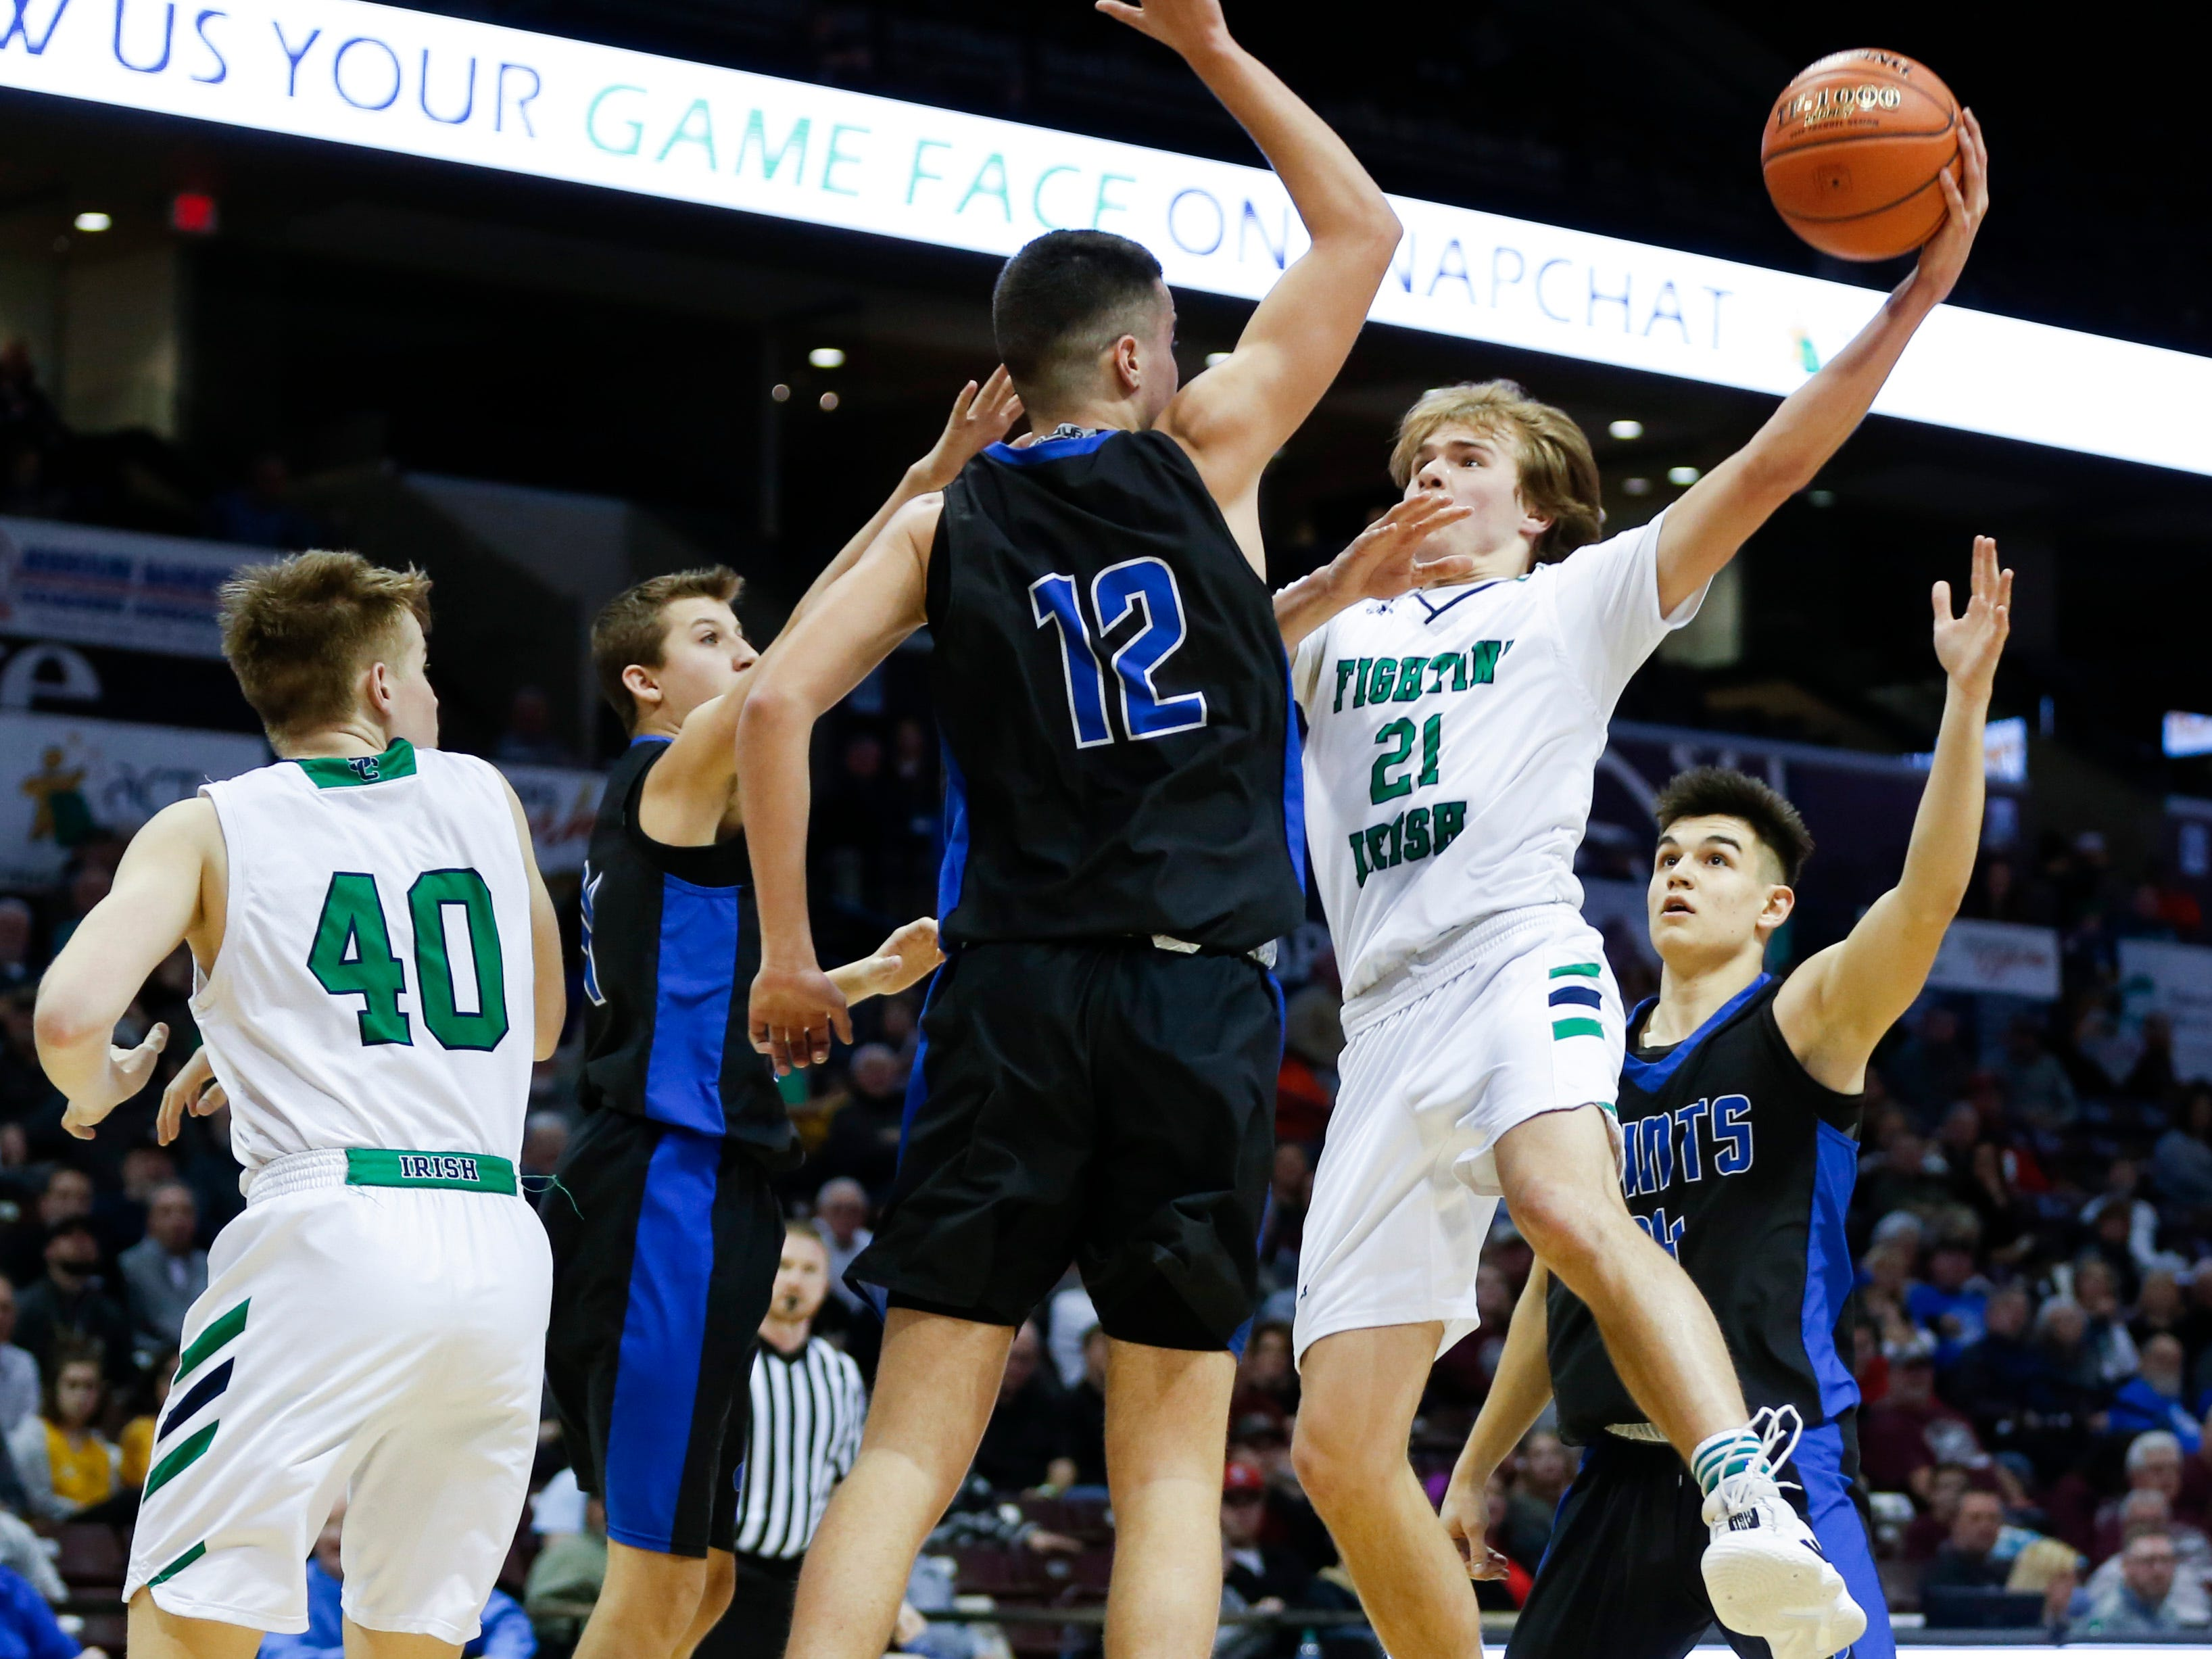 Springfield Catholic's Charlie O'Reilly attempts a field goal as St. Paul Lutheran's Vlado Vretenicic attempts to block the shot in the semifinal round of Class 3 state basketball at JQH Arena on Thursday, March 7, 2019